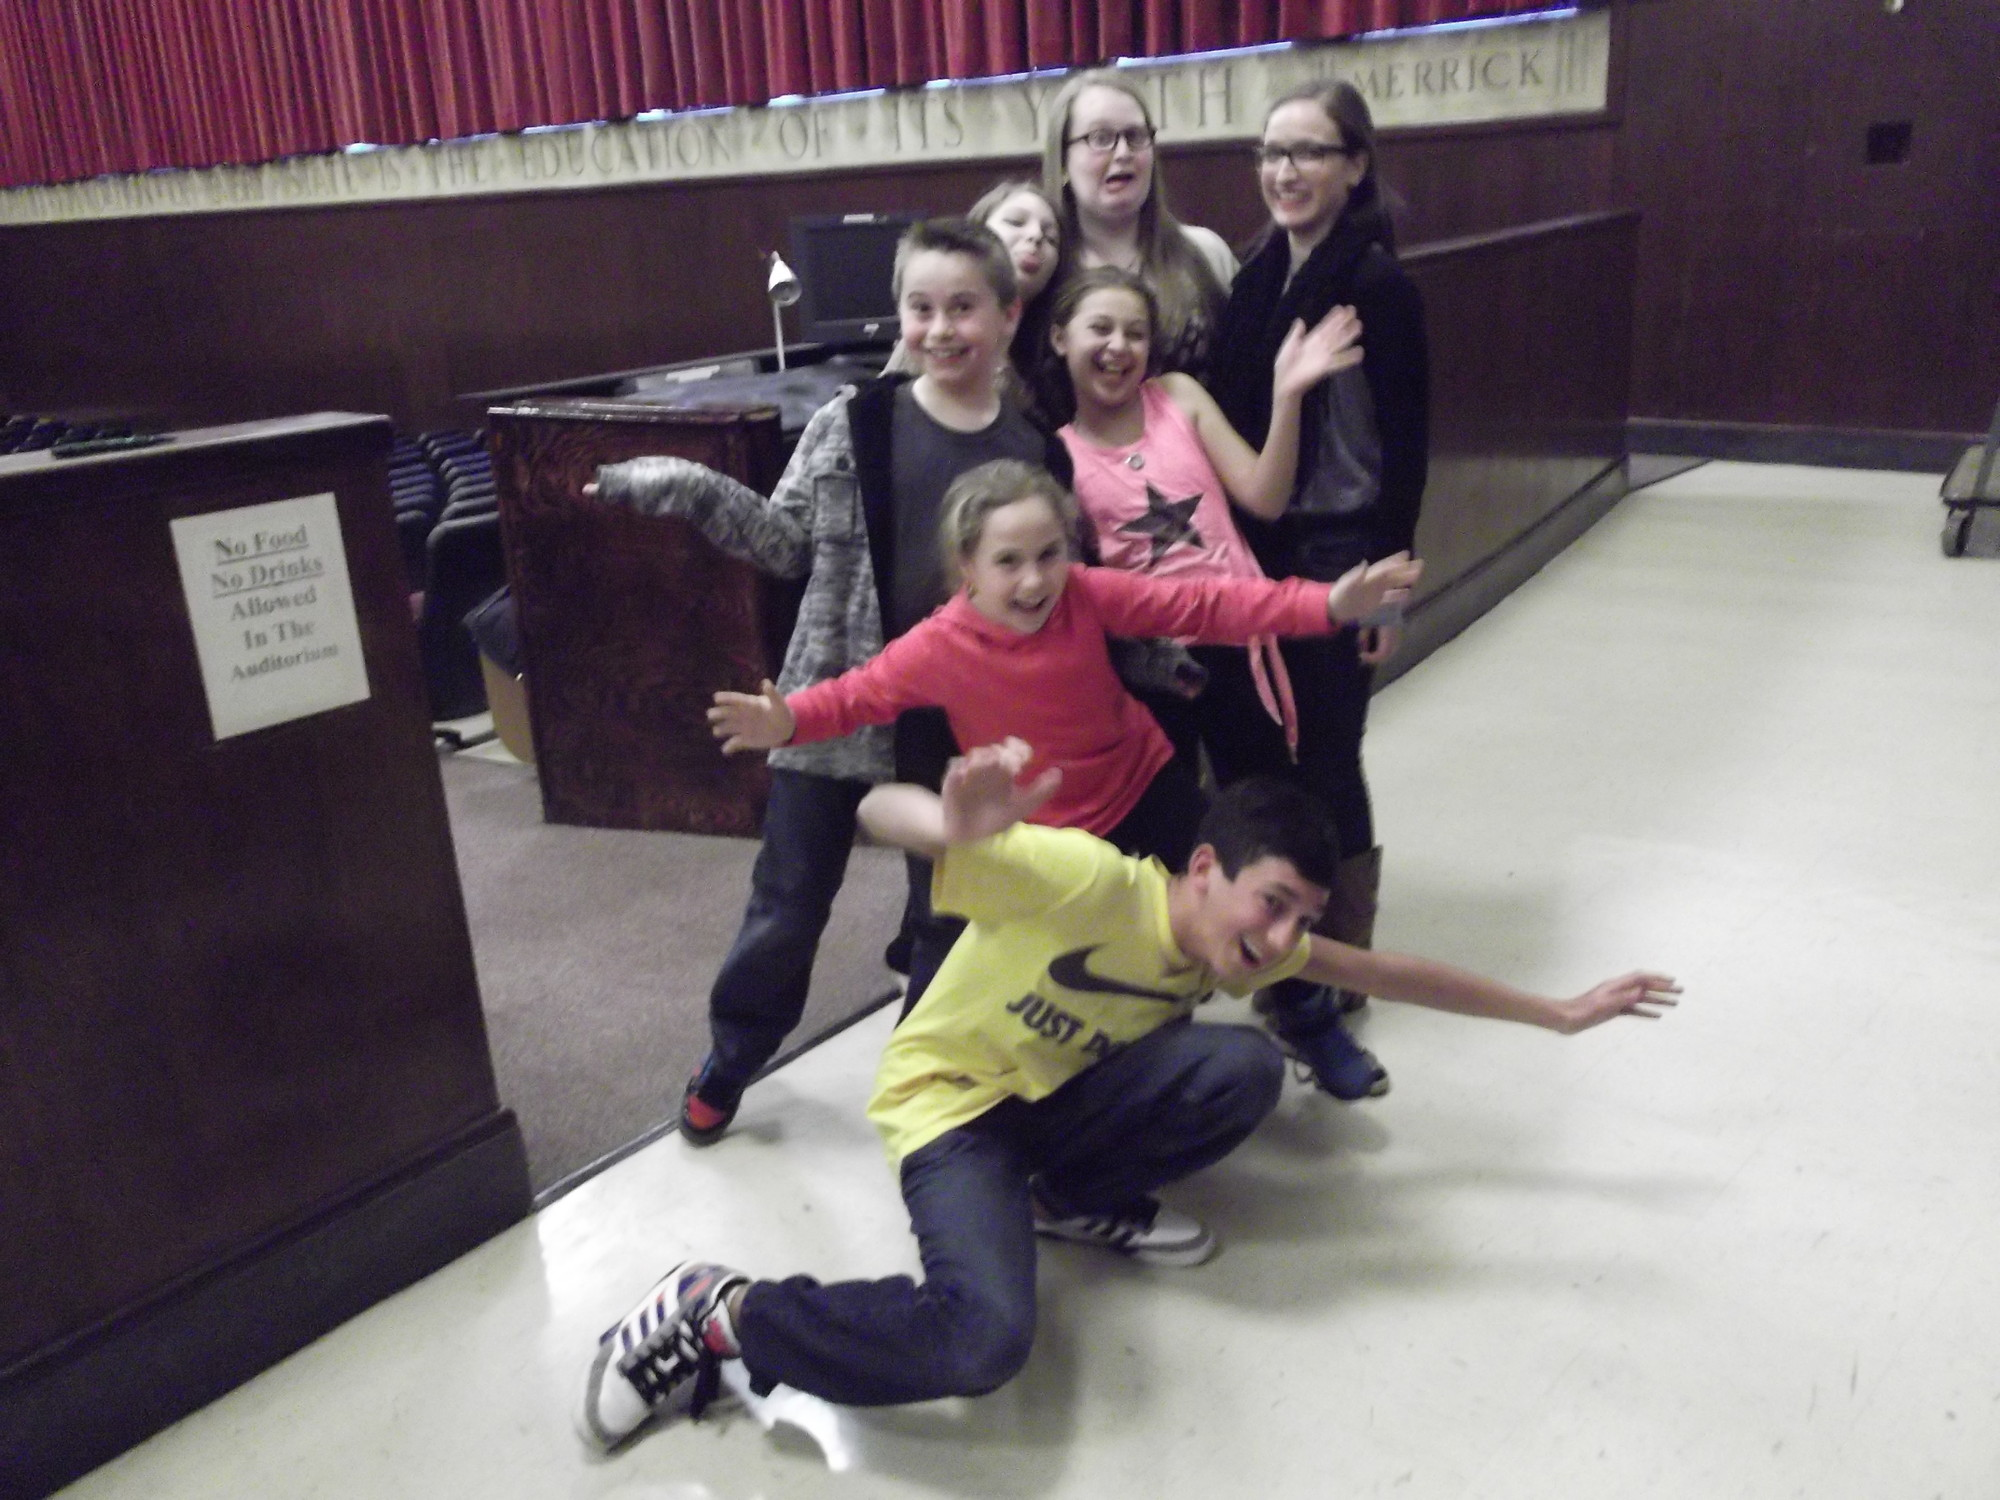 Jacob Geier, Molly Walsh, Jack McDonagh, Halle Wunderman, Jess Serviss, Sara Miller and Sabrina Garone will play the von Trapp children in Mepham's production of 'The Sound of Music.'